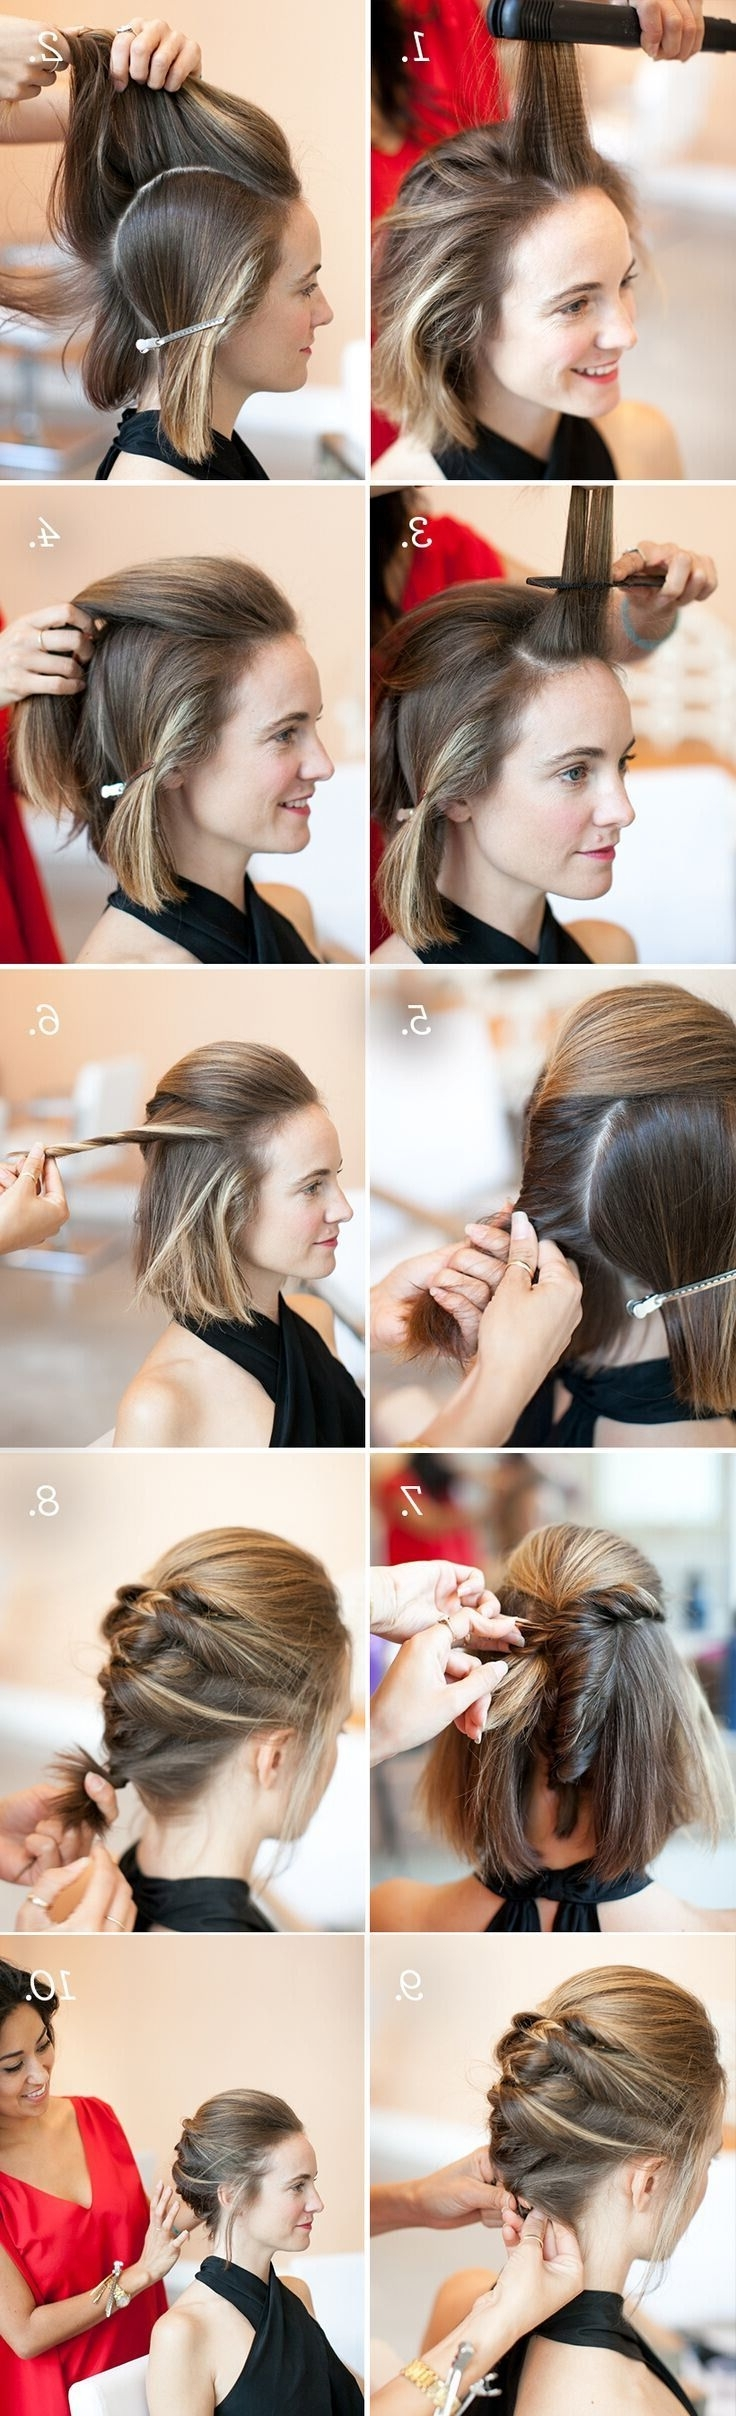 20 Short Hairstyles For Girls: With Or Without Curls! (1 | Short Intended For Bob Updo Hairstyles (View 3 of 15)